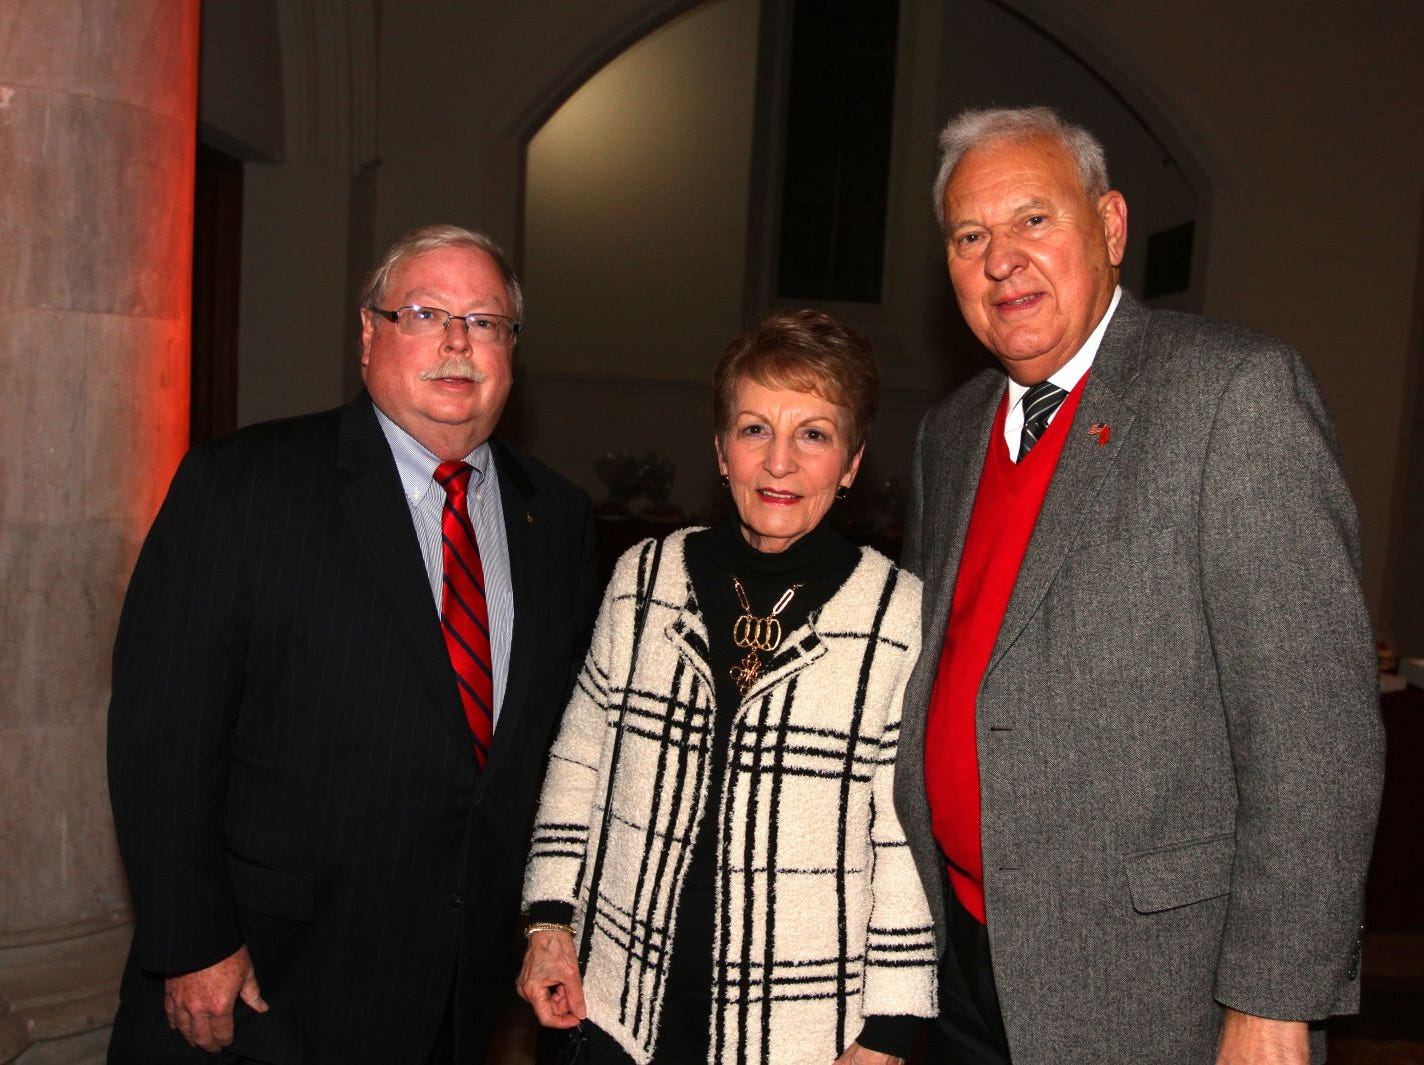 Tom Madigan; Lois Ciampo. Nick Ciampo. Wyckoff Family YMCA hosted its 75th anniversary gala to celebrate its benefactors, held at the Rio Vista seminary in Mahwah. 11/16/2018